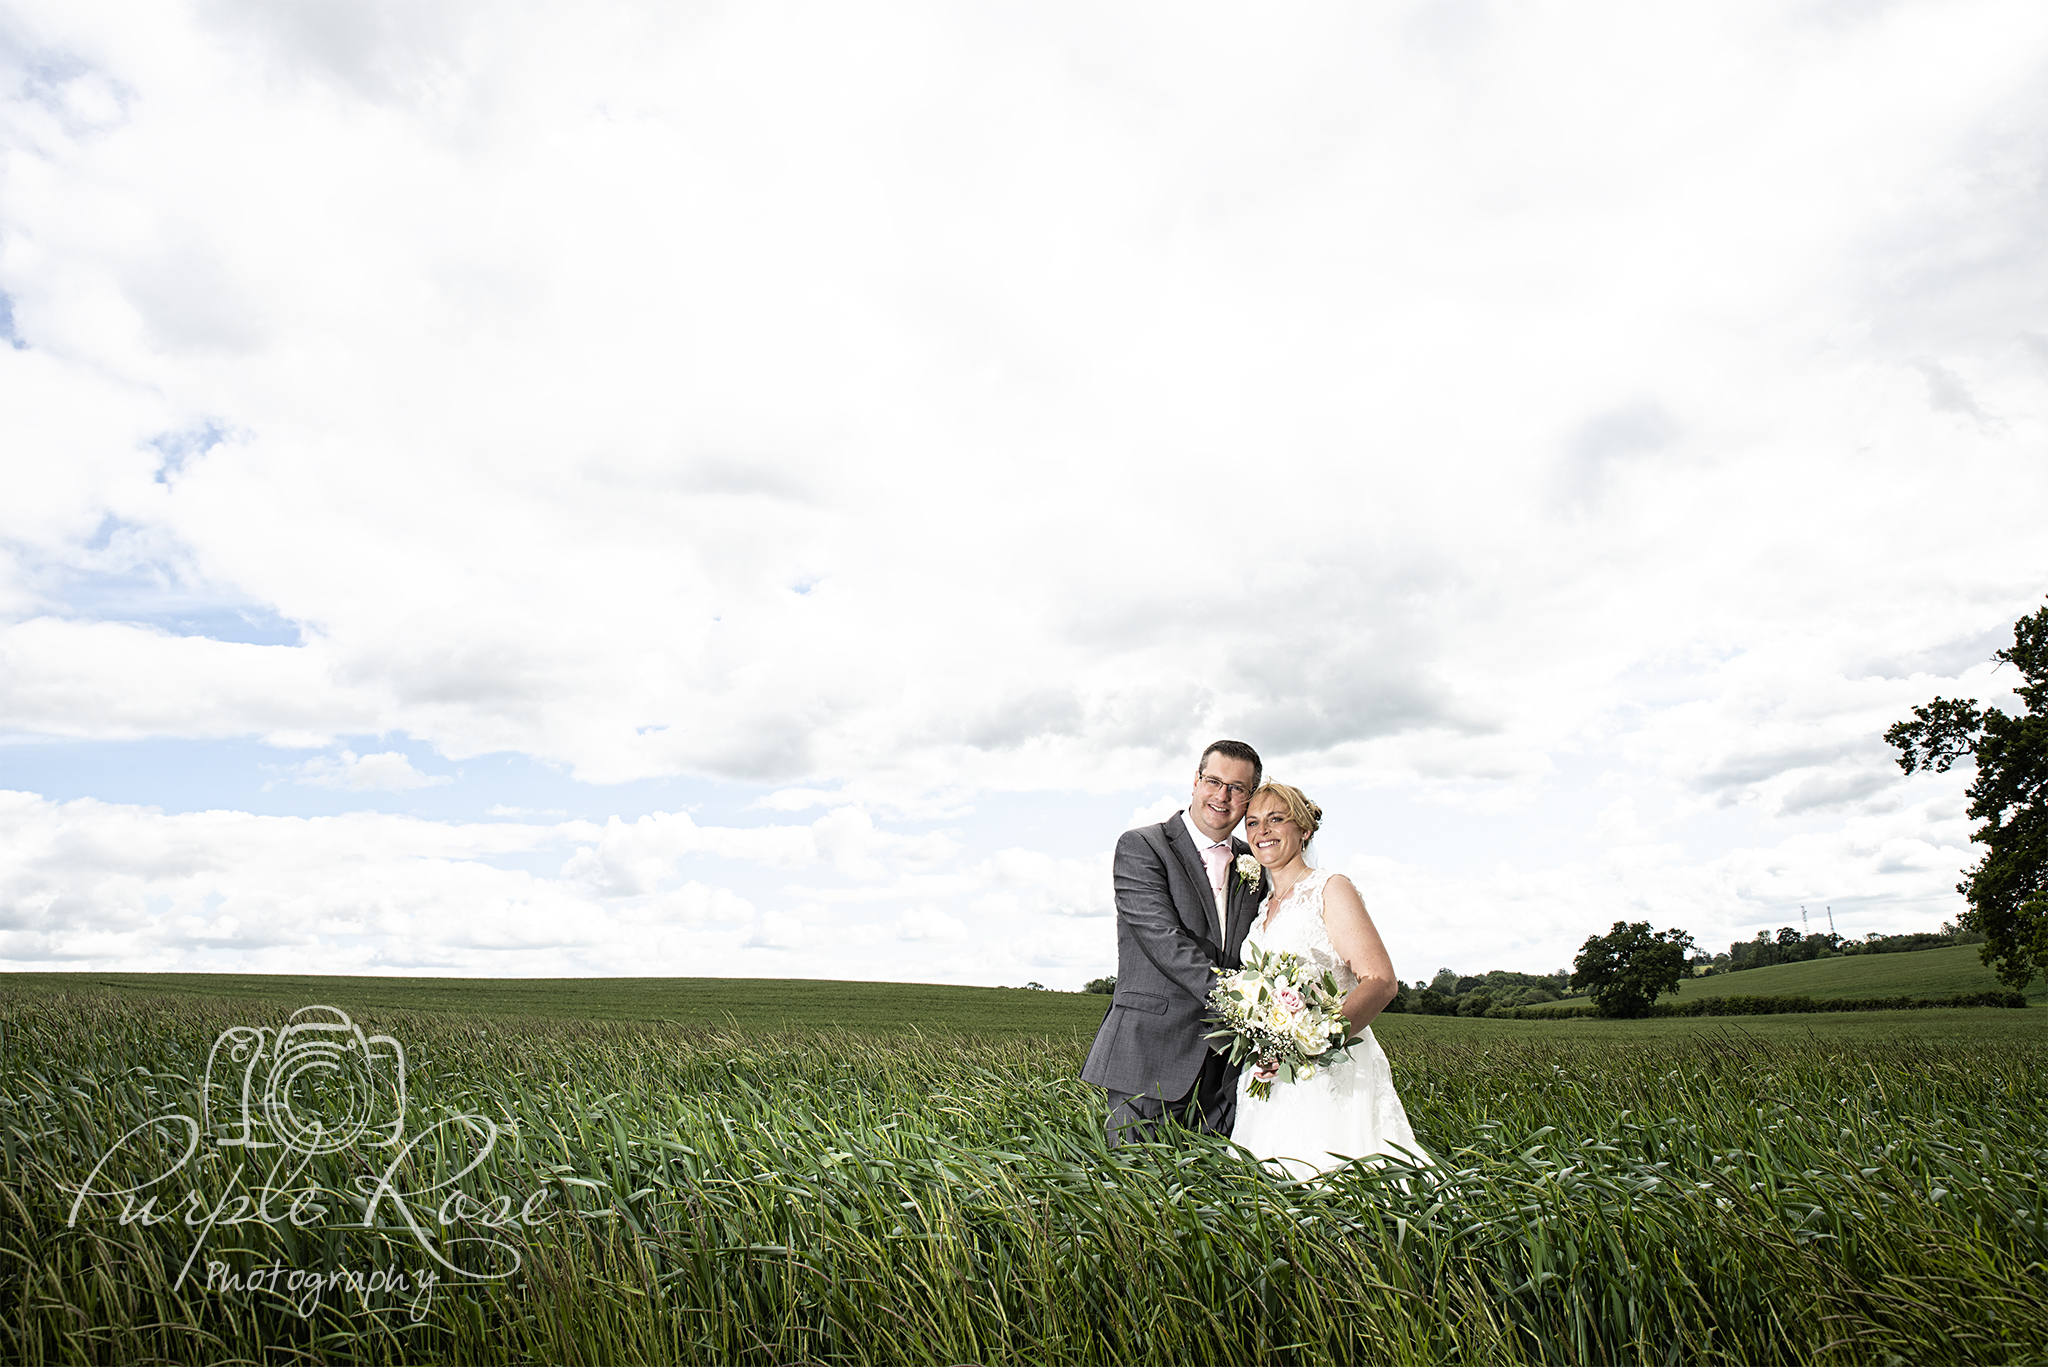 Bride and groom standing in a field